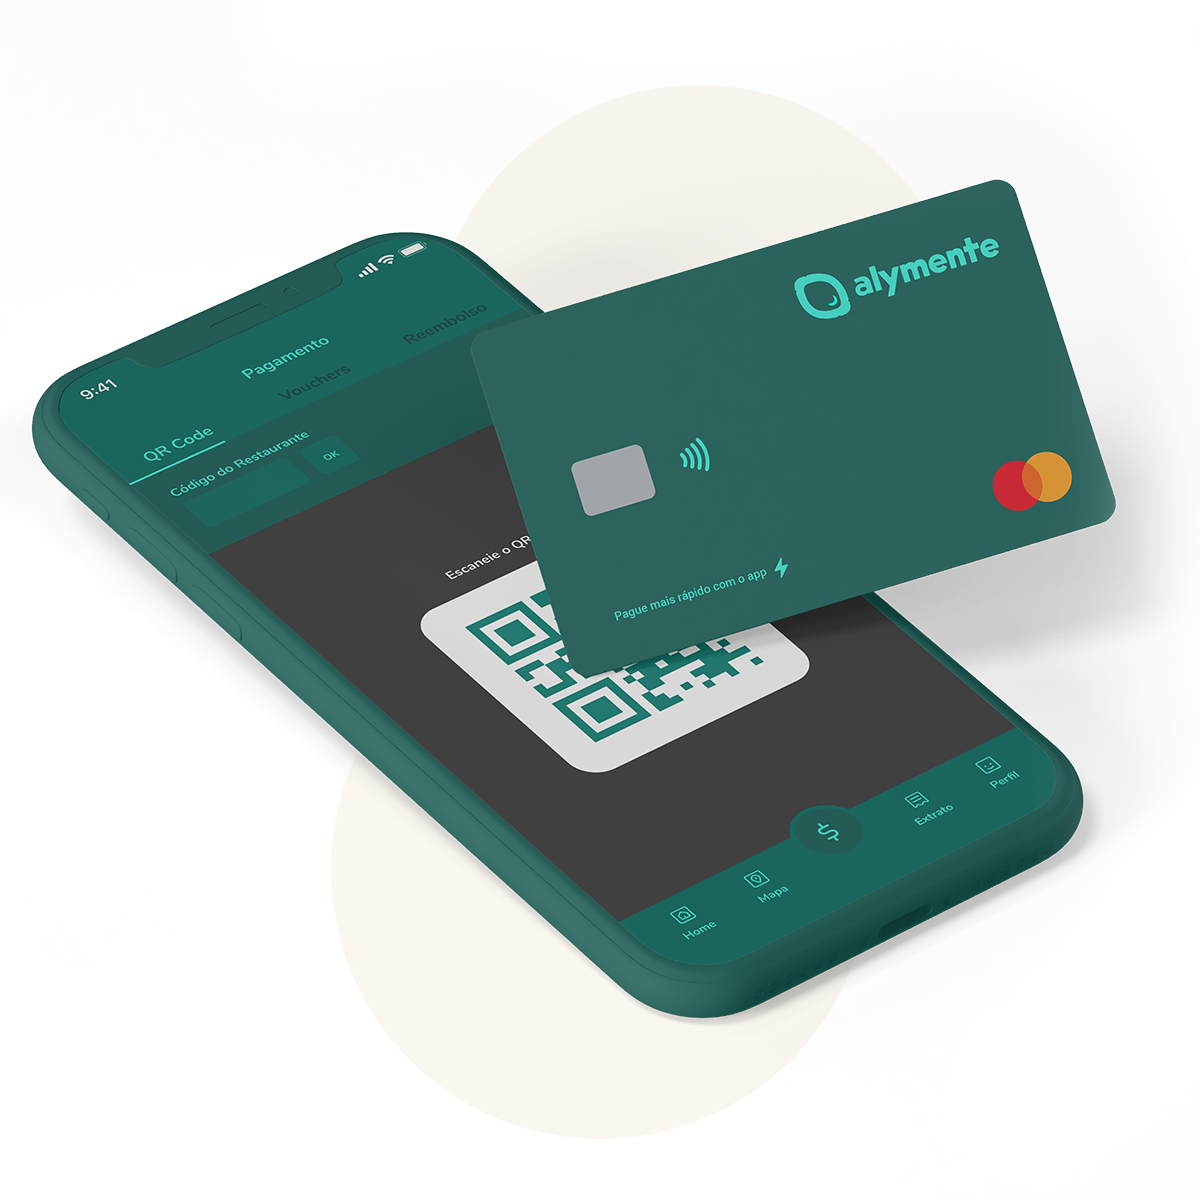 Alymente app in payment mode and a floating Alymente card.